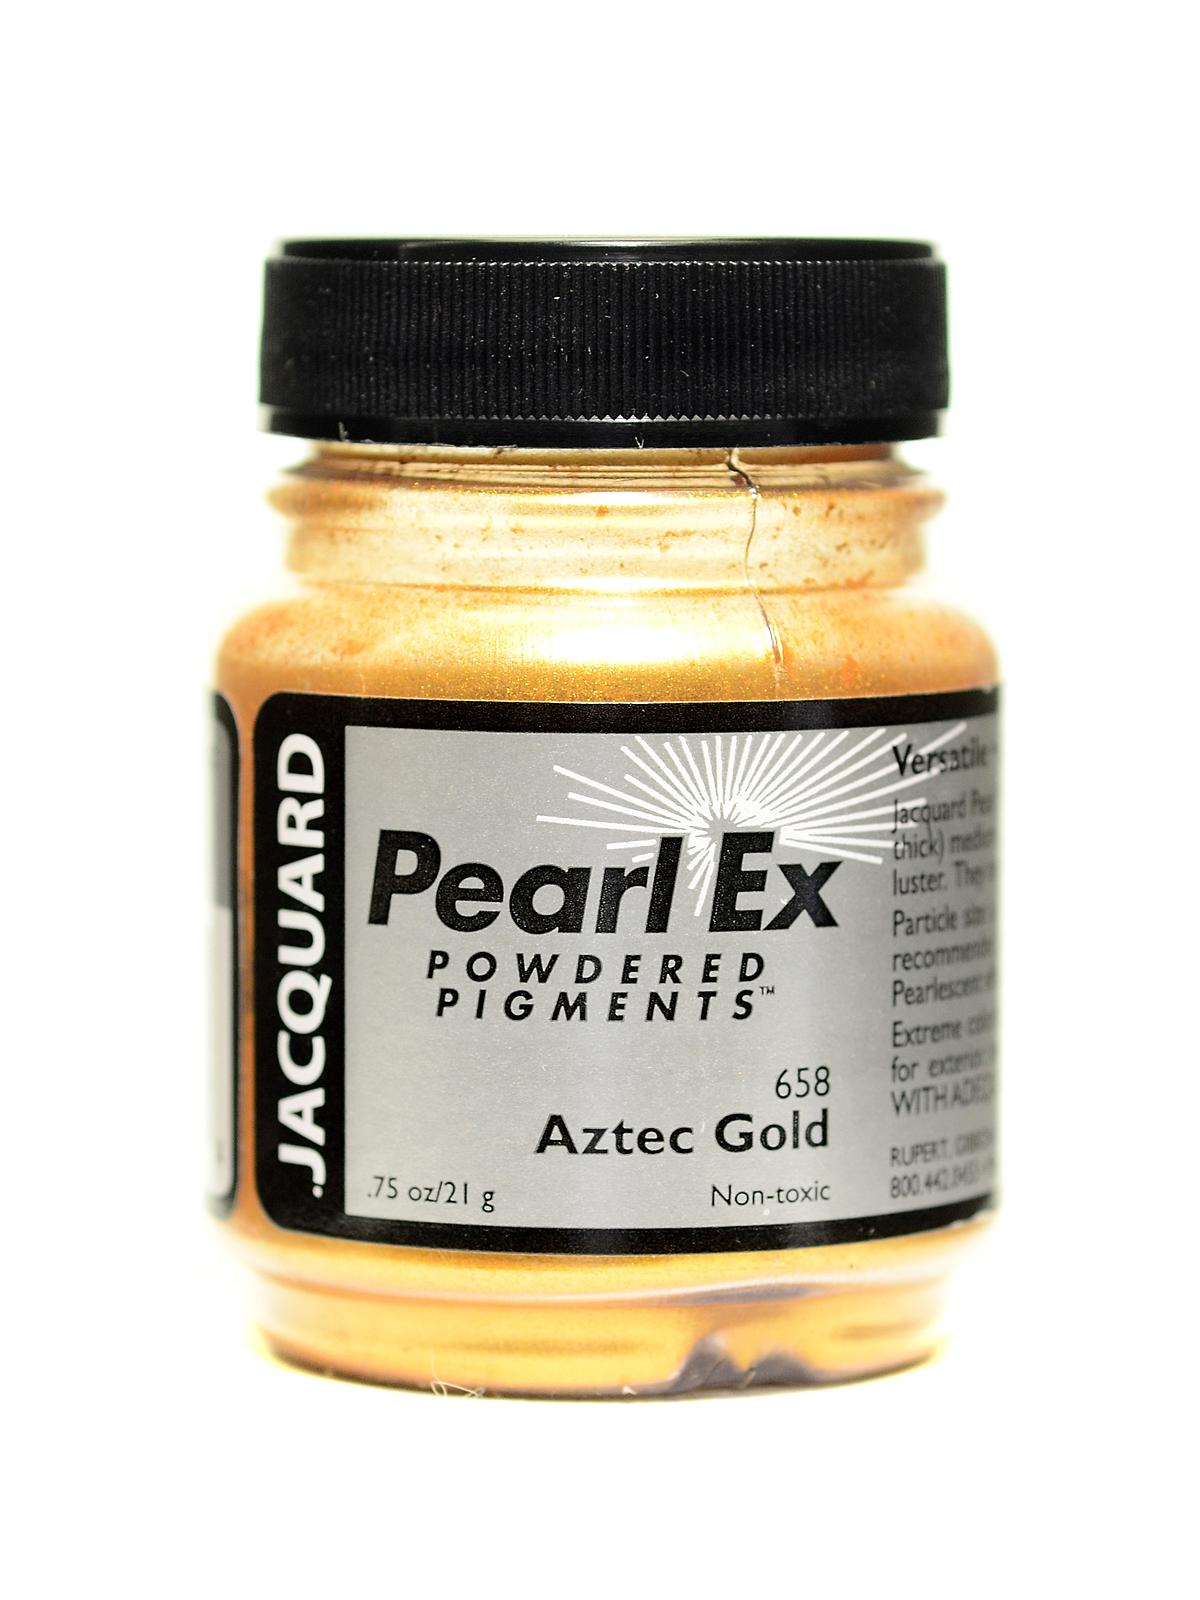 pearl ex powdered pigments instructions